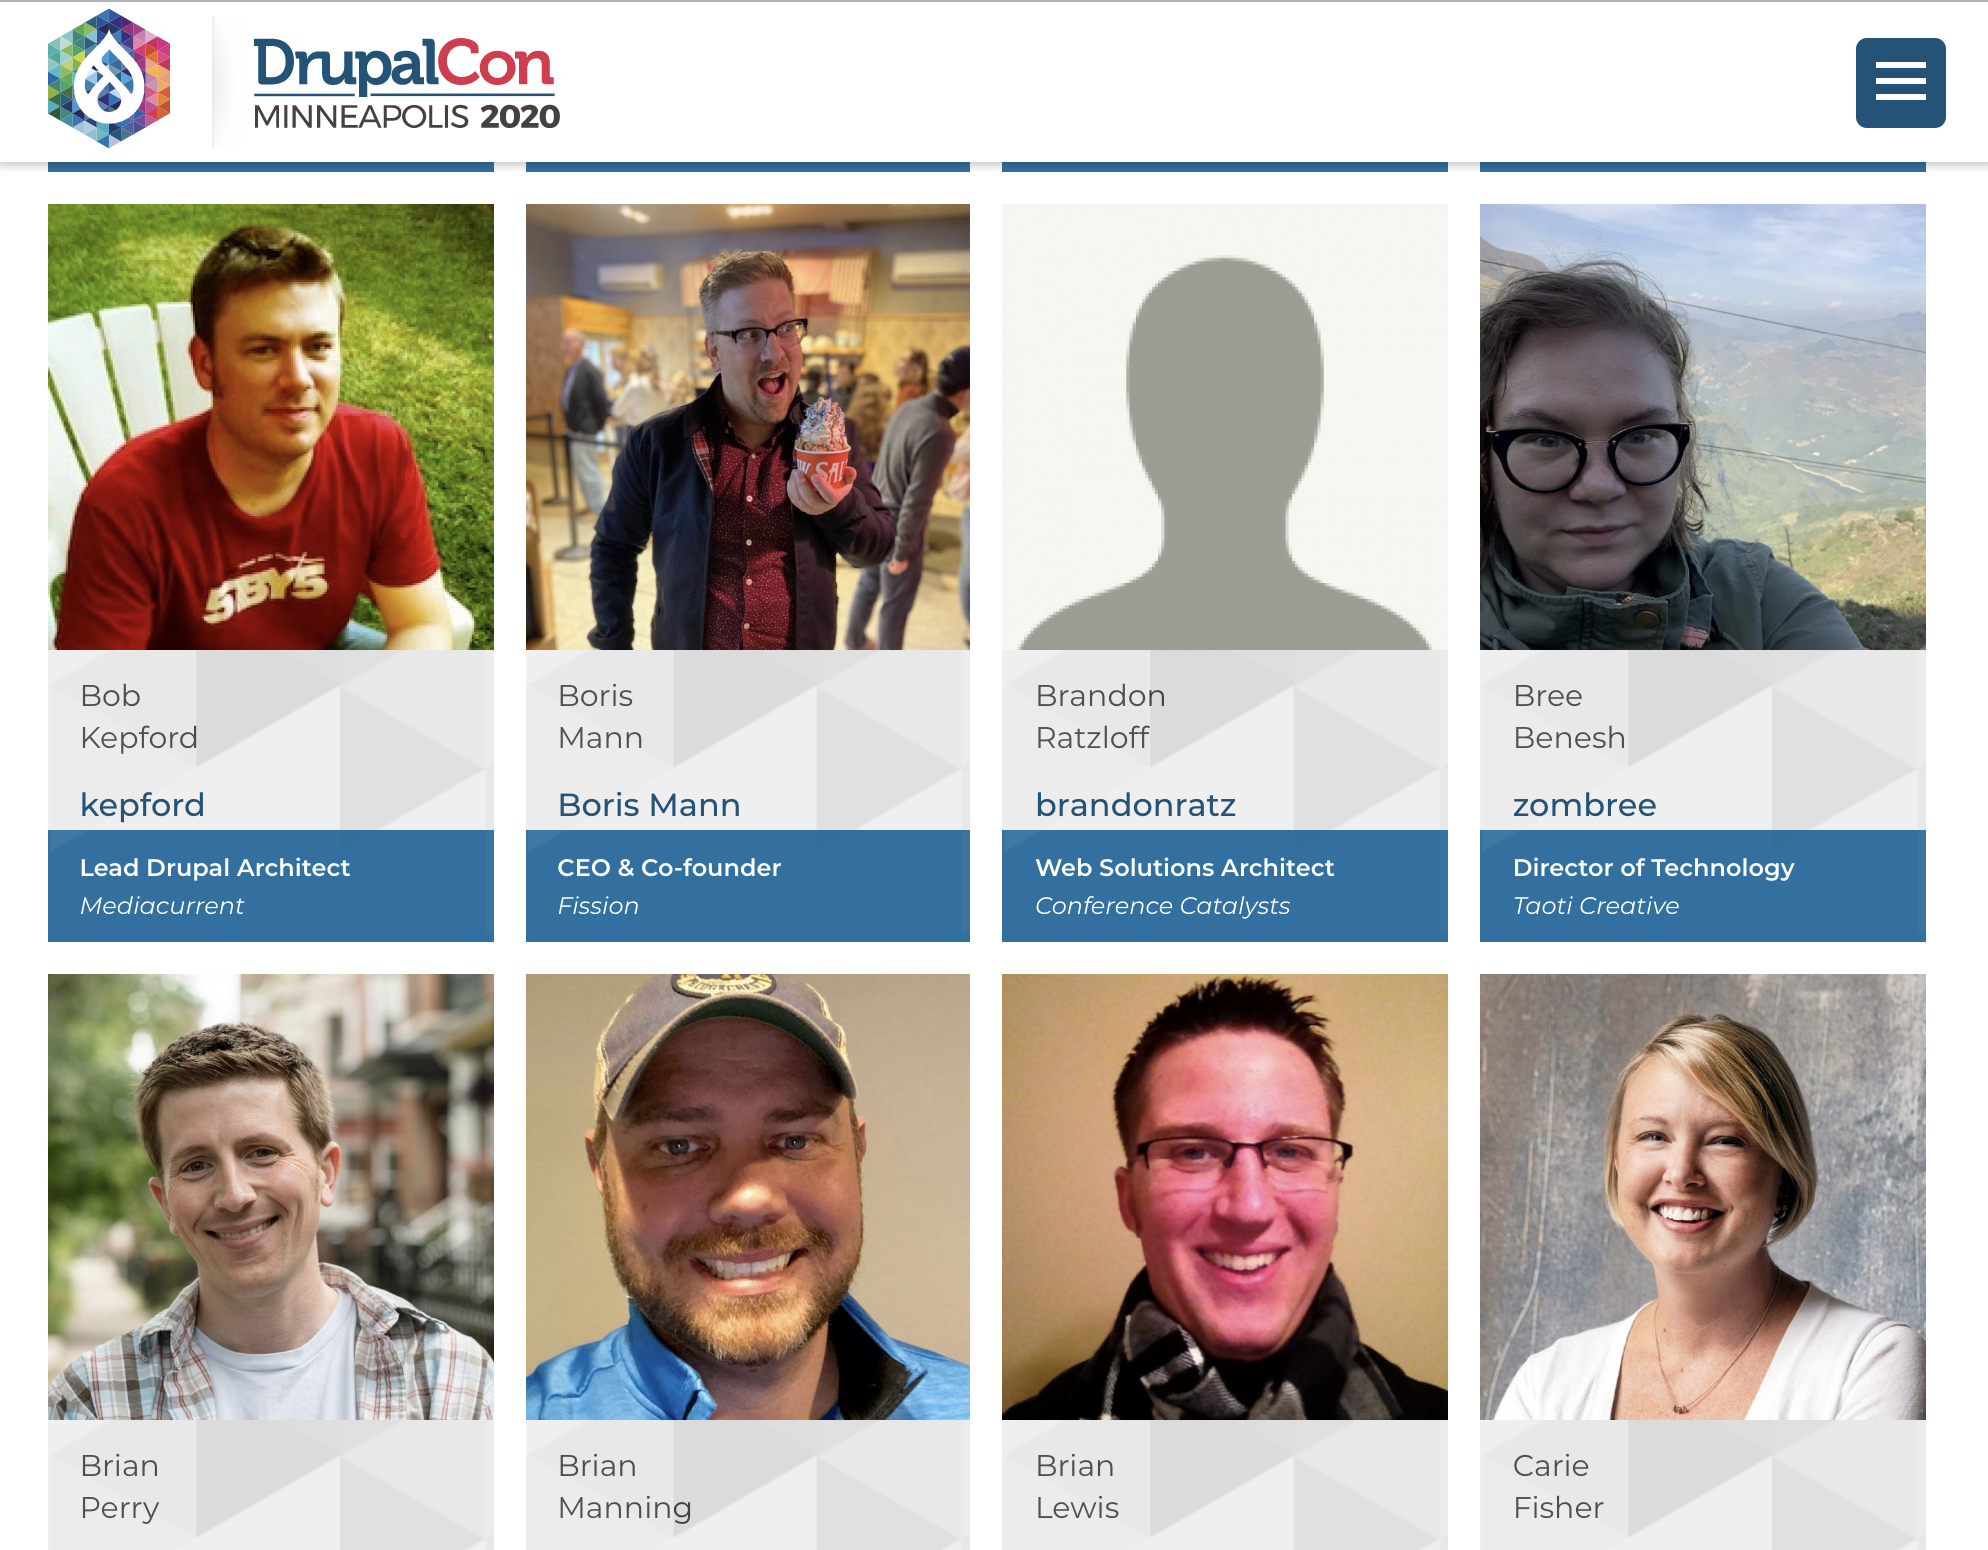 Back to the Future (of Drupal)